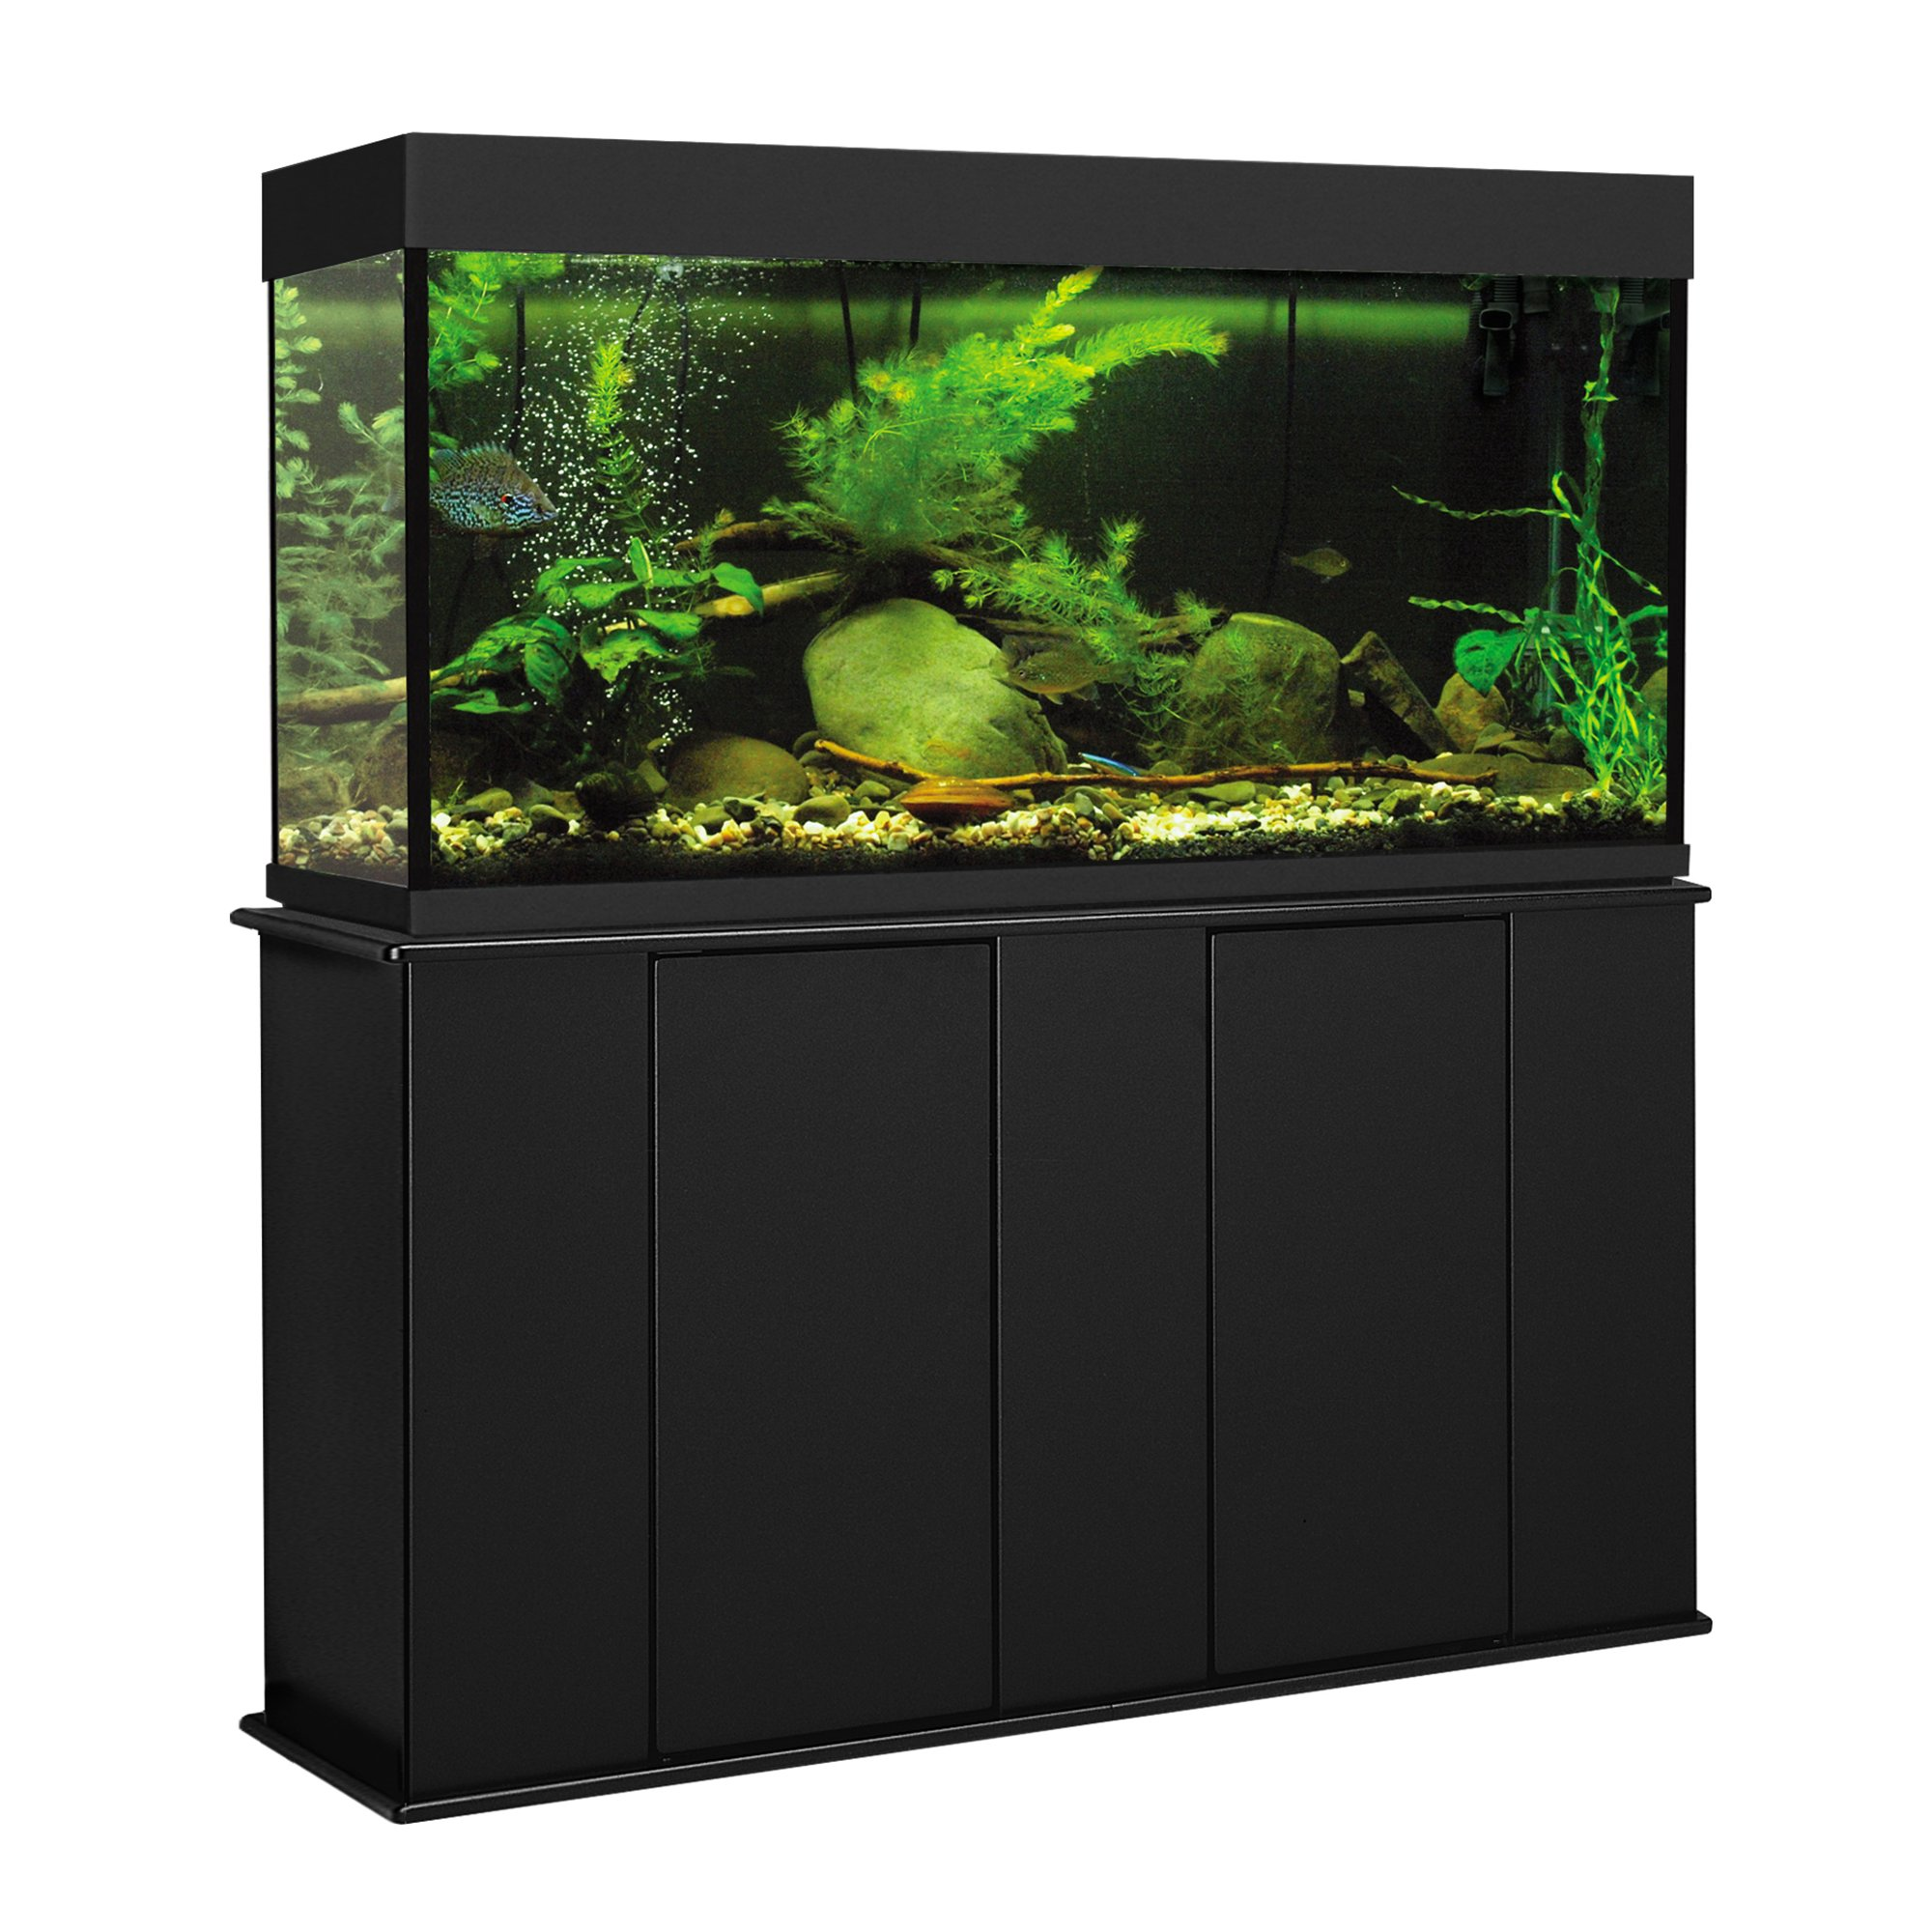 Aquatic fundamentals 55 gallon upright aquarium stand petco for 55 gallon fish tank for sale